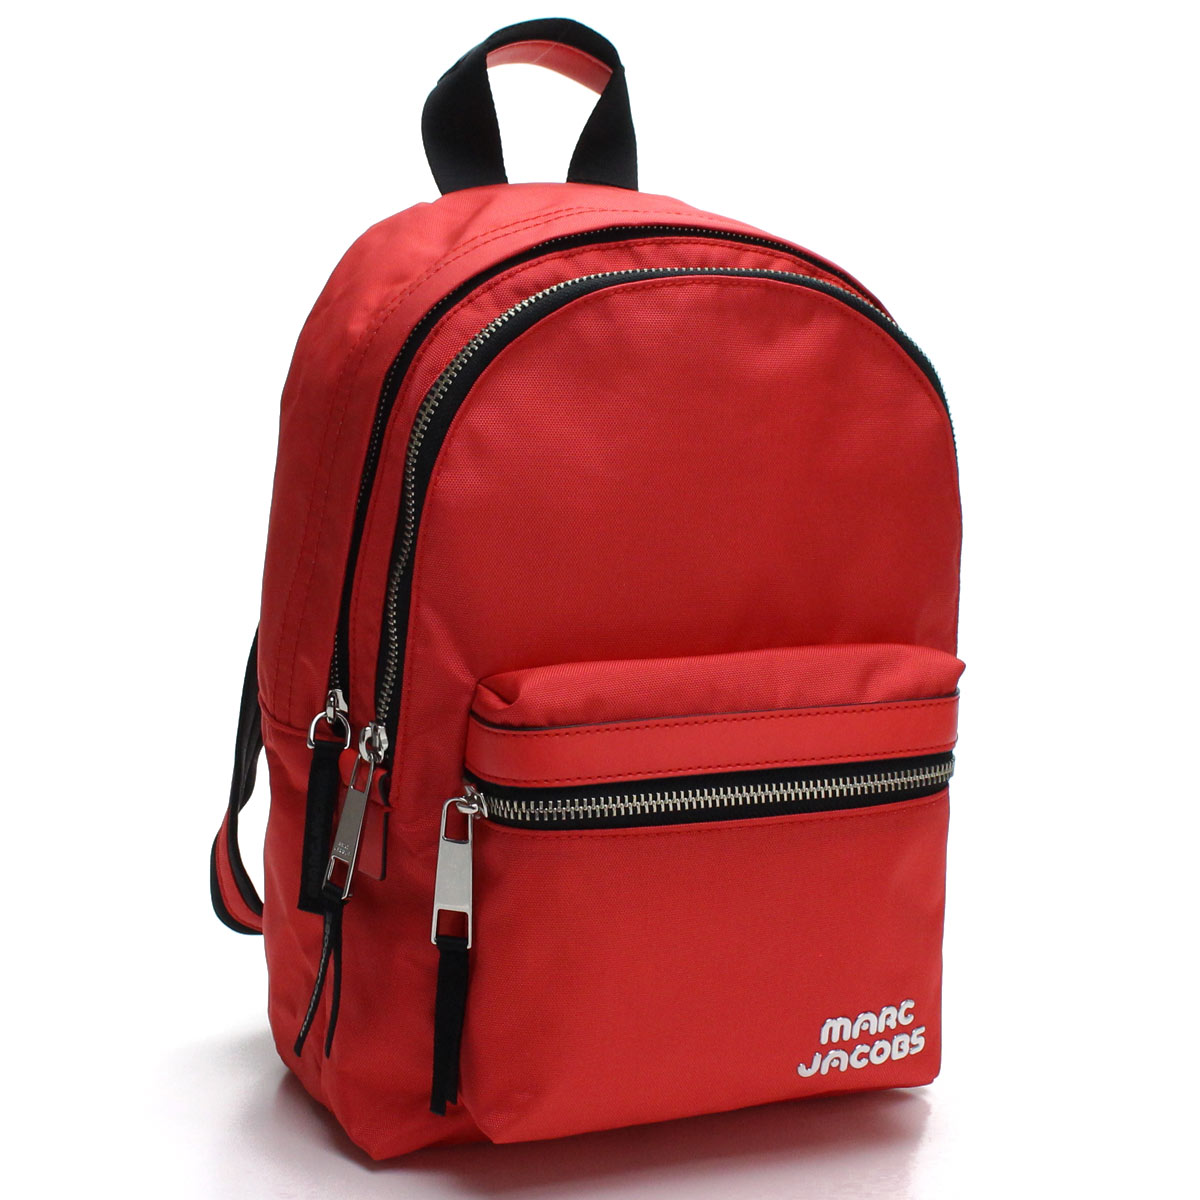 7a9d841abb47 Bighit The total brand wholesale  Mark Jacobs MARC JACOBS TREK PACK MEDIUM  BACKPACK medium backpack rucksack M0014031 617 POPPY RED red system